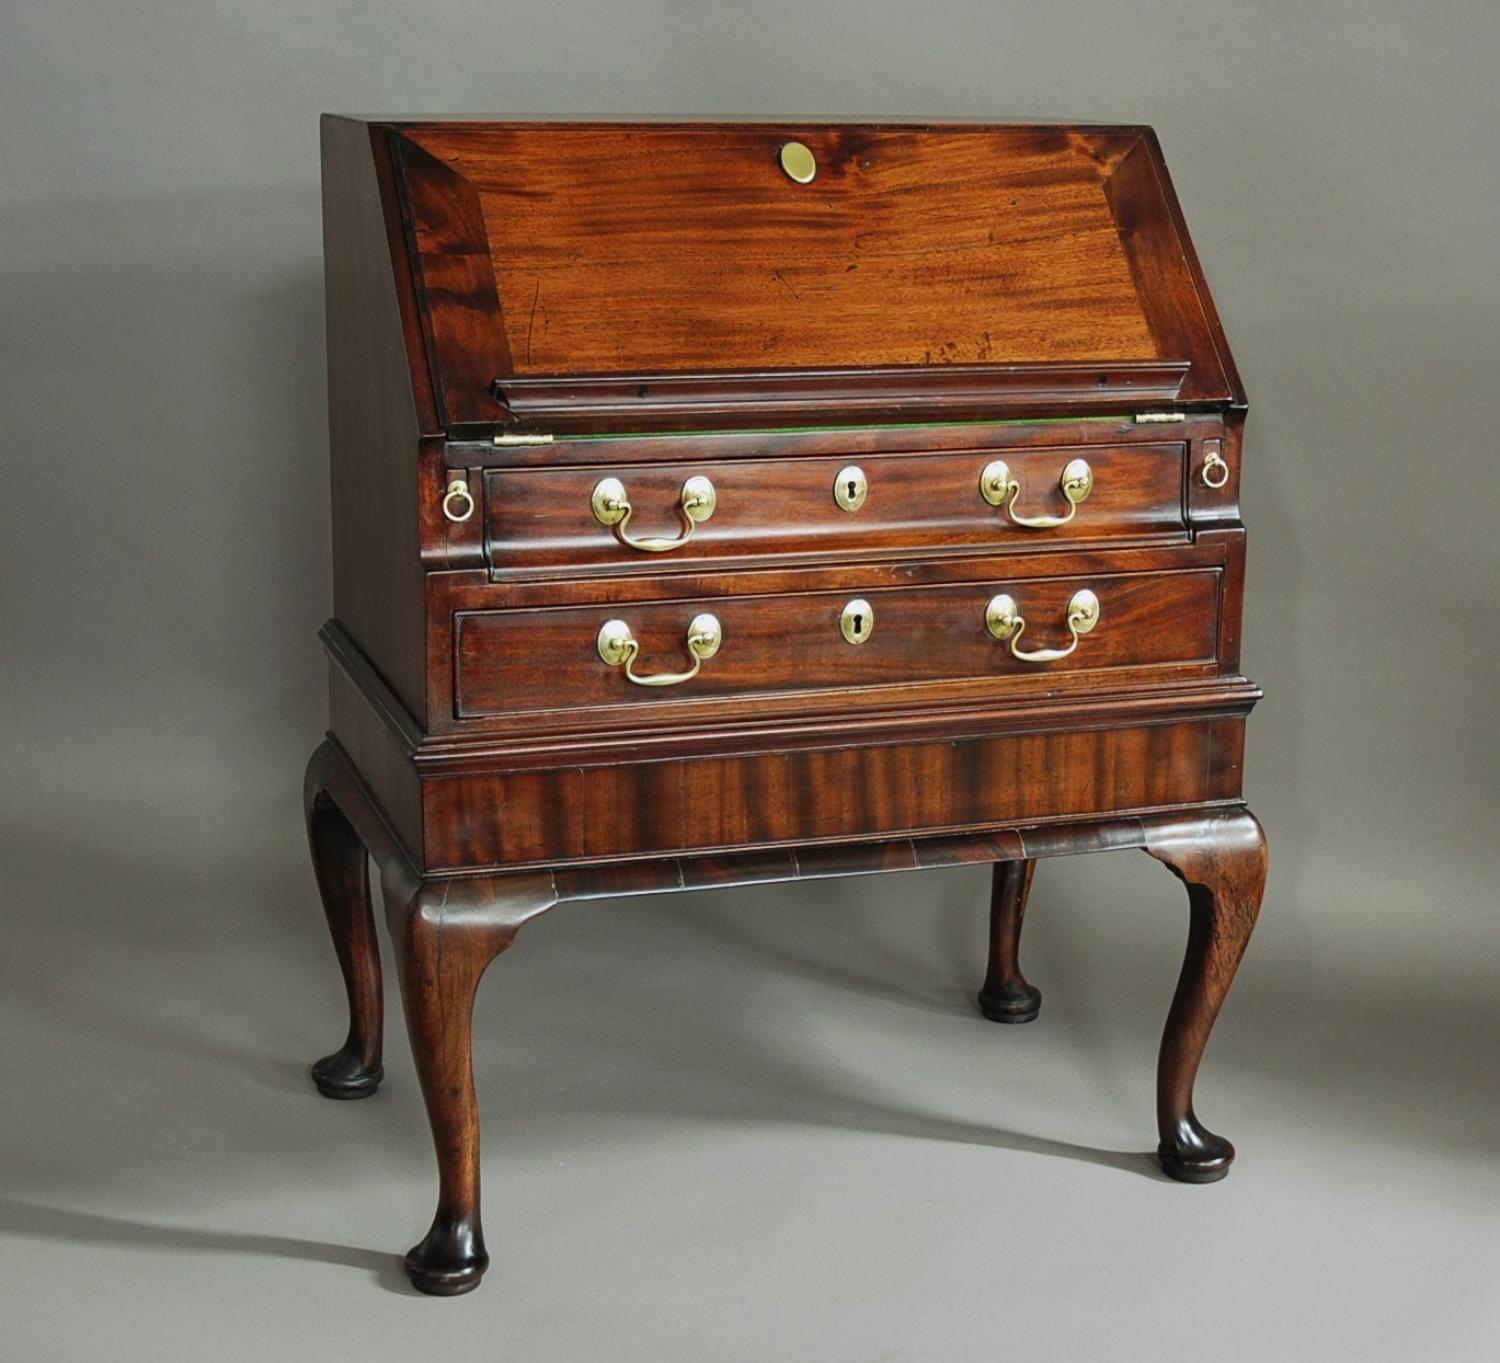 Small 18th century mahogany bureau on stand